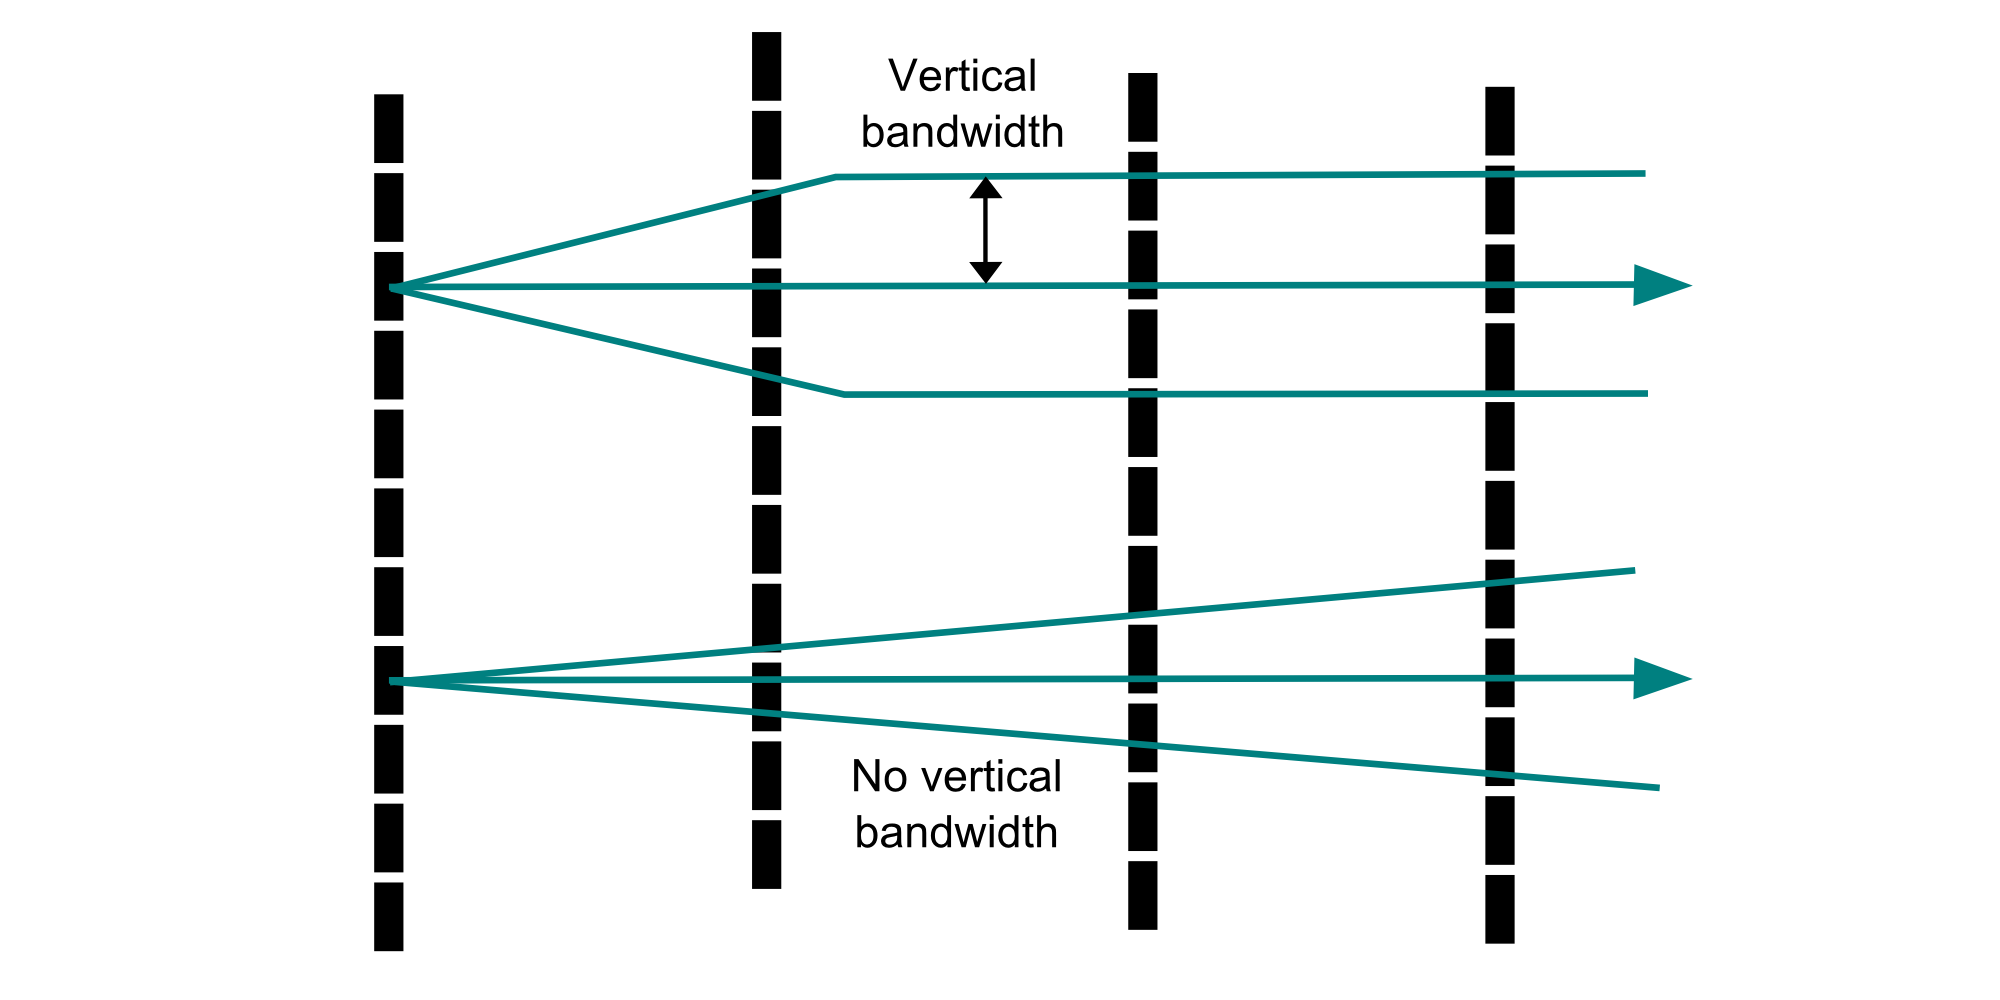 Vertical plane cross section comparing two different vertical tolerance definitions. Sample locations are shown as black rectangles and two variogram tolerance definitions as blue wireframes. Using a vertical bandwidth in addition to the dip angle tolerance avoids an overly restrictive tolerance at short distances.